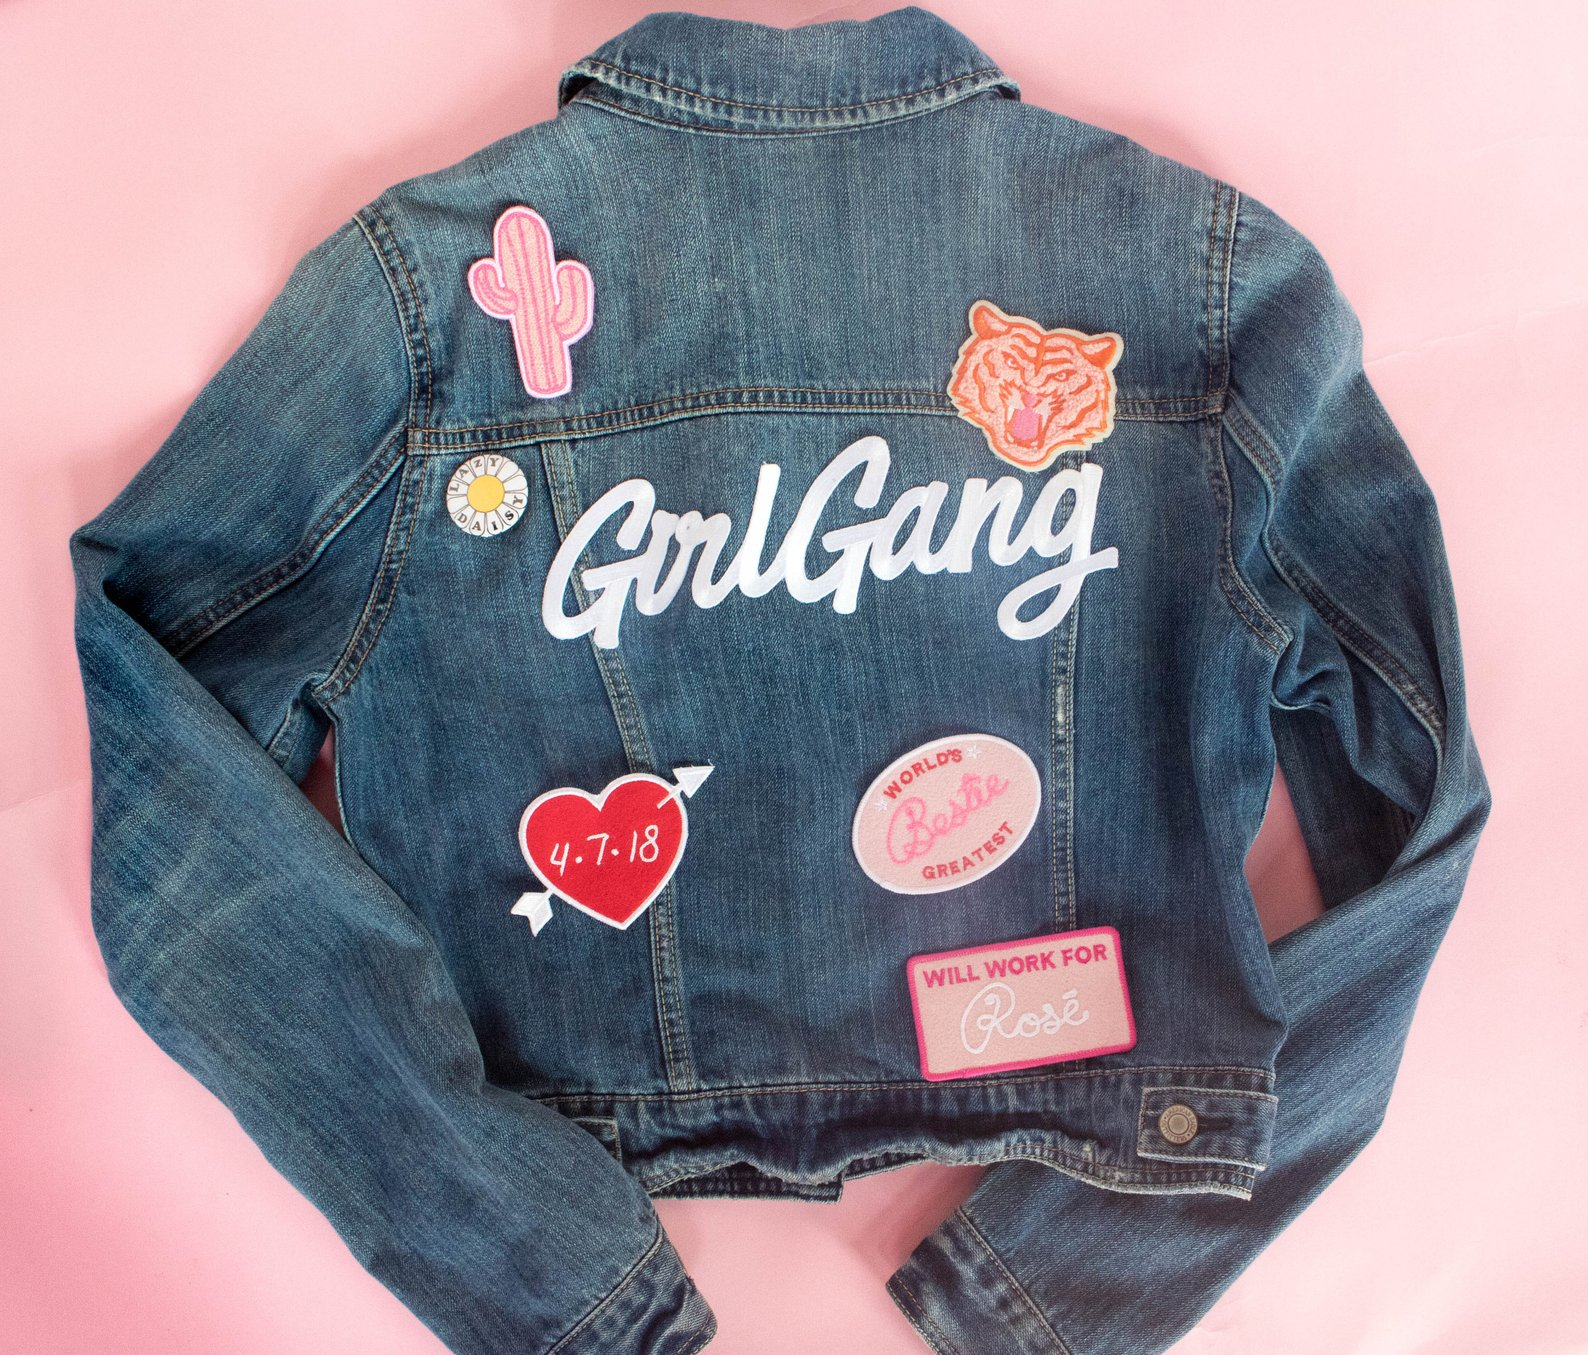 Girl Gang Patches for Denim Jacket By The Daily Disco